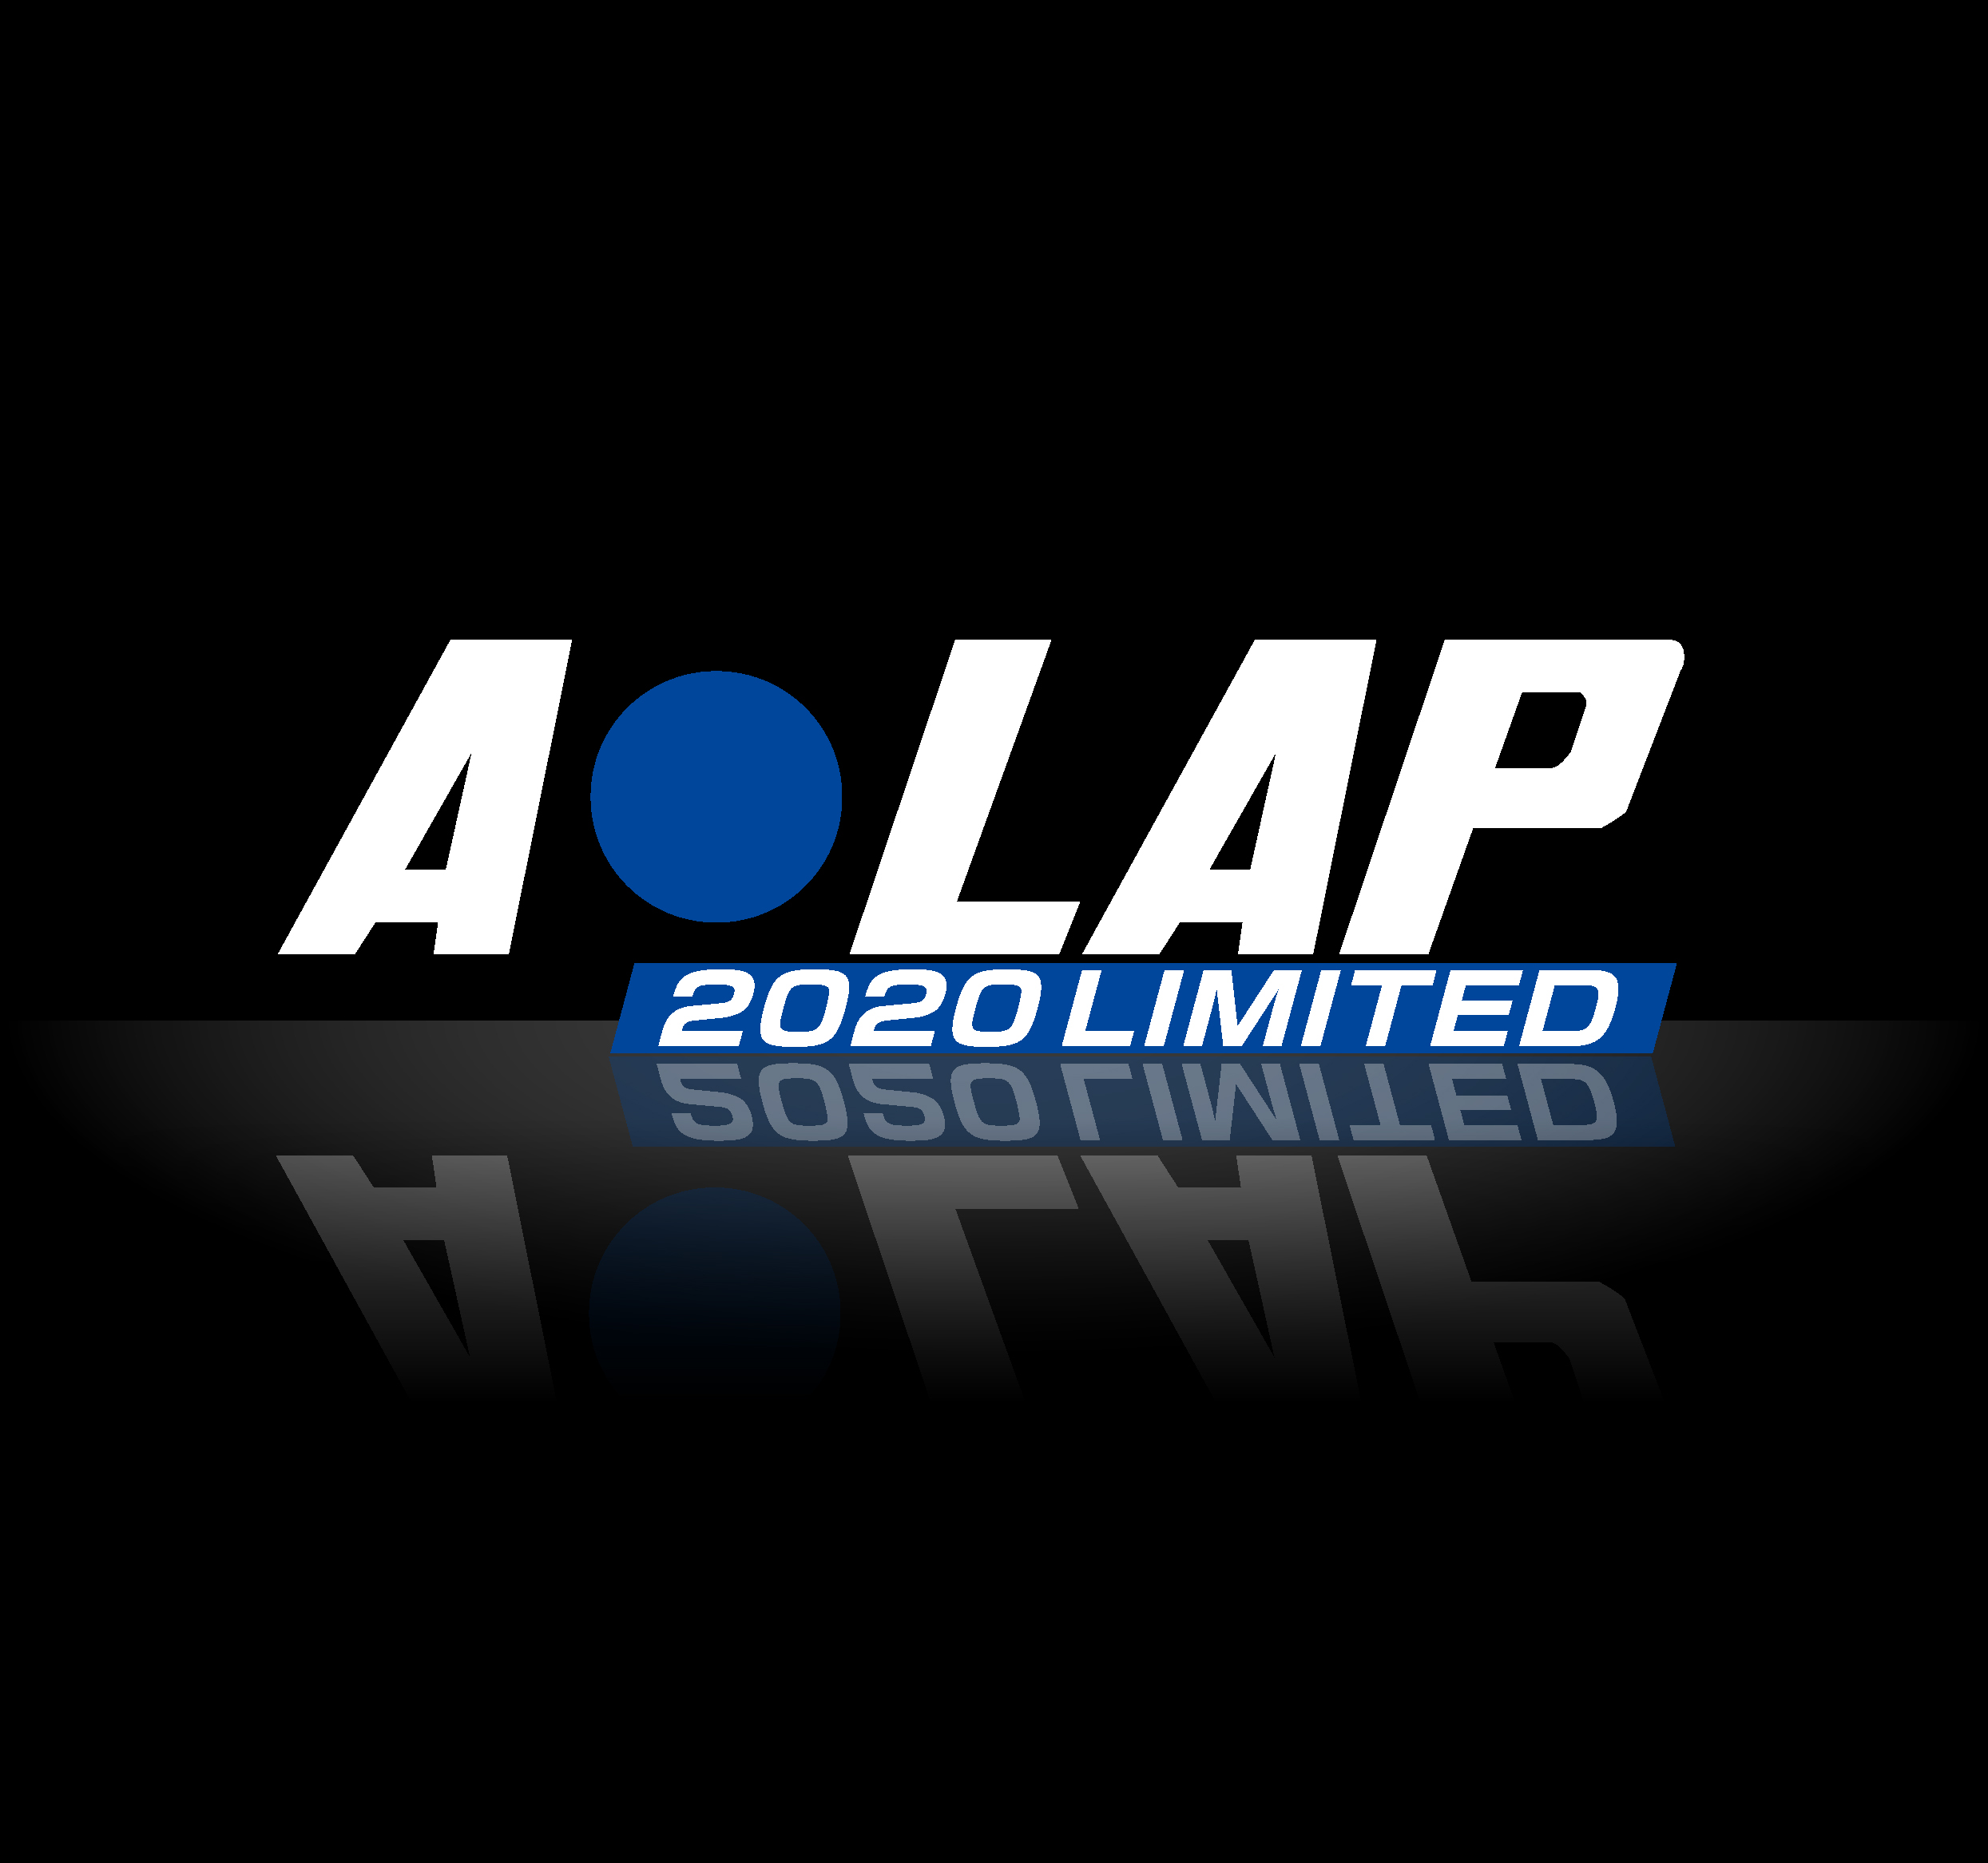 ALAP 2020 LIMITED